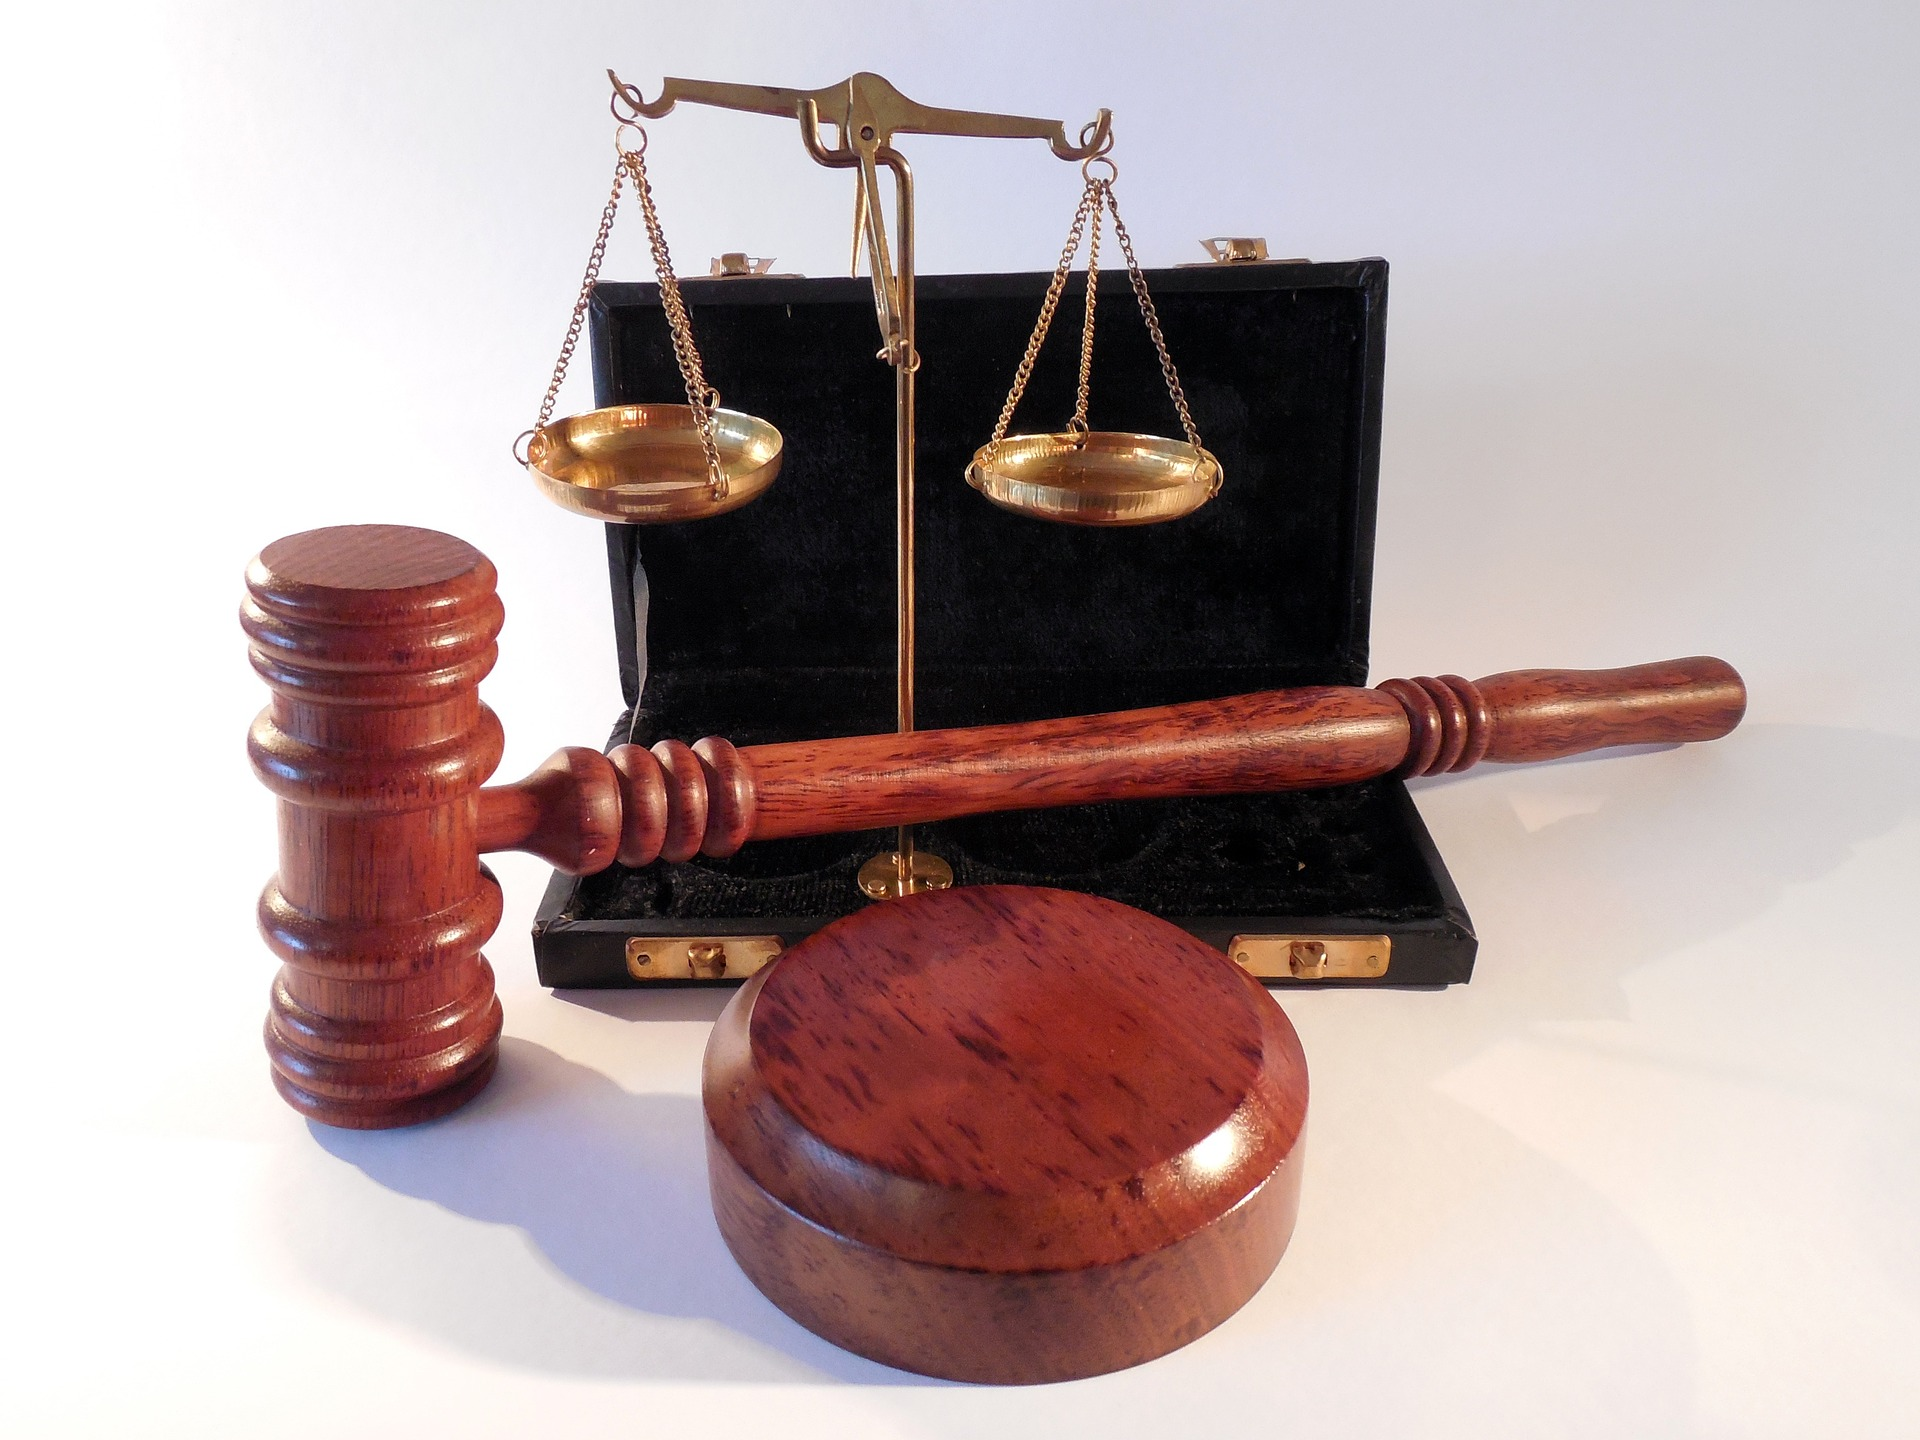 Gavel and justice scales. Represents multiple areas of law. Personal injury lawyers.